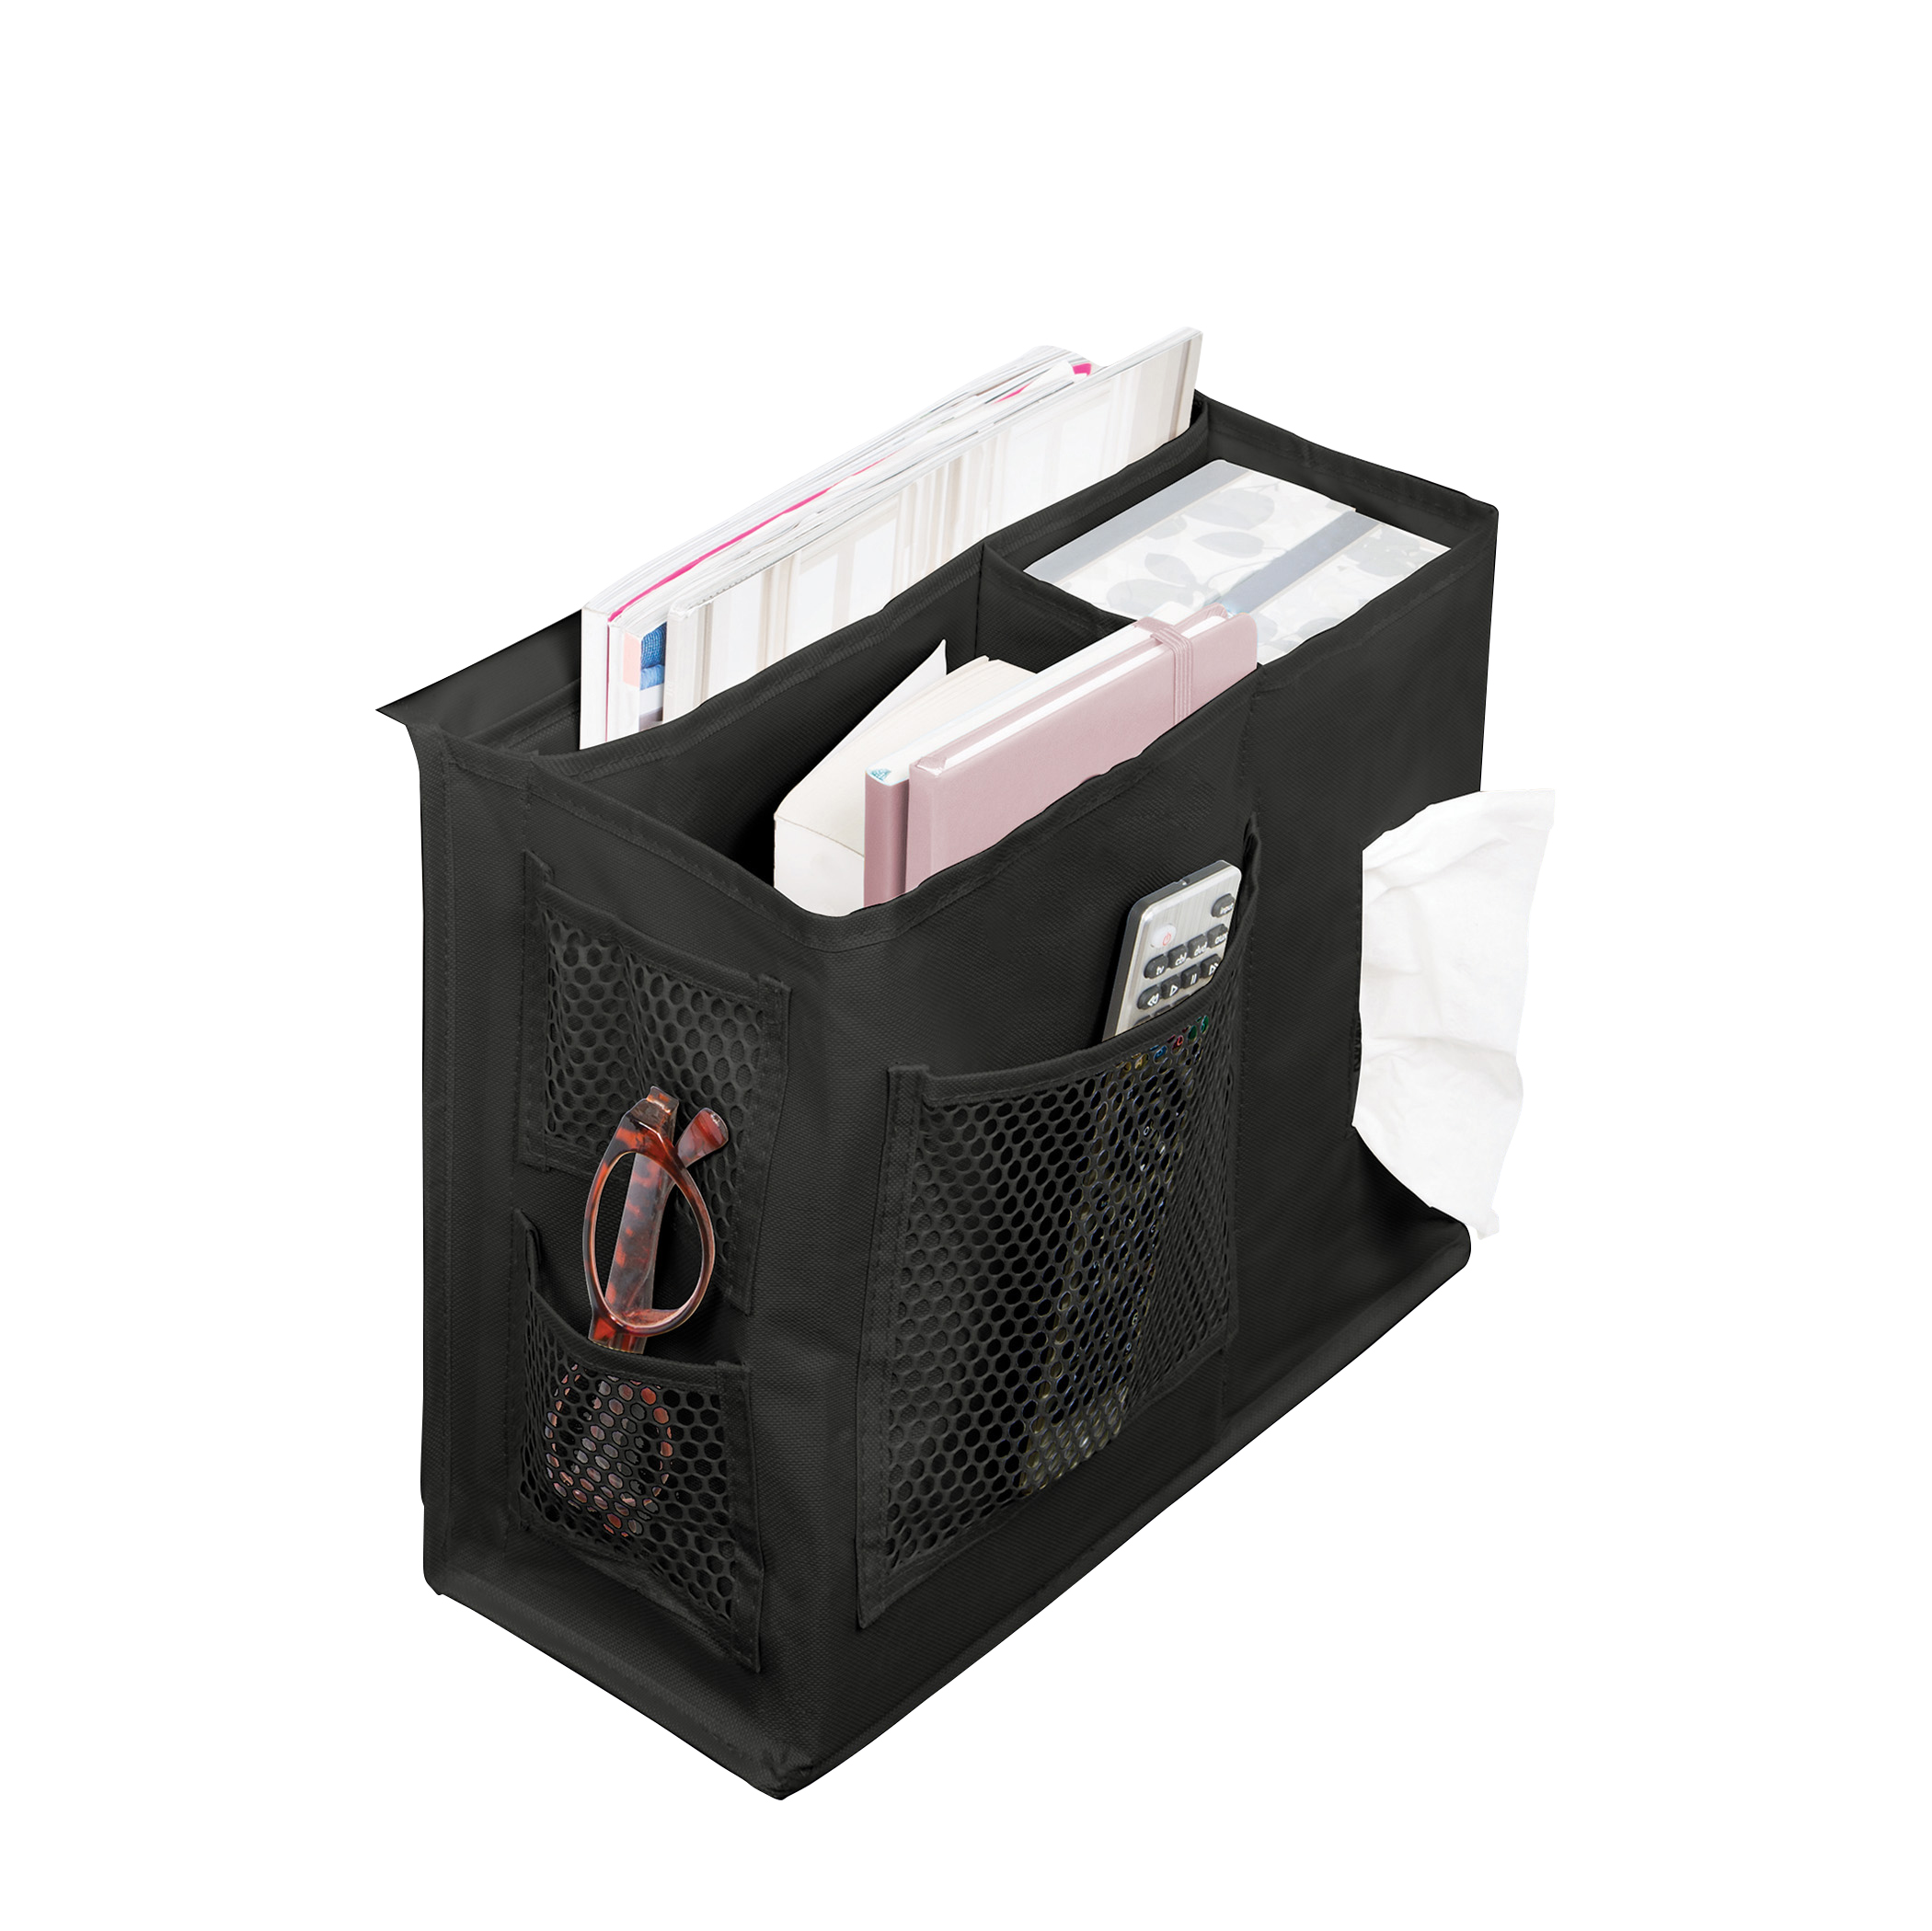 Black Bedside CaddyItem #65943 - Organize books, iPads, laptops, phones and study materials. Made of 600D material with PE backing.Dimensions: 12.5